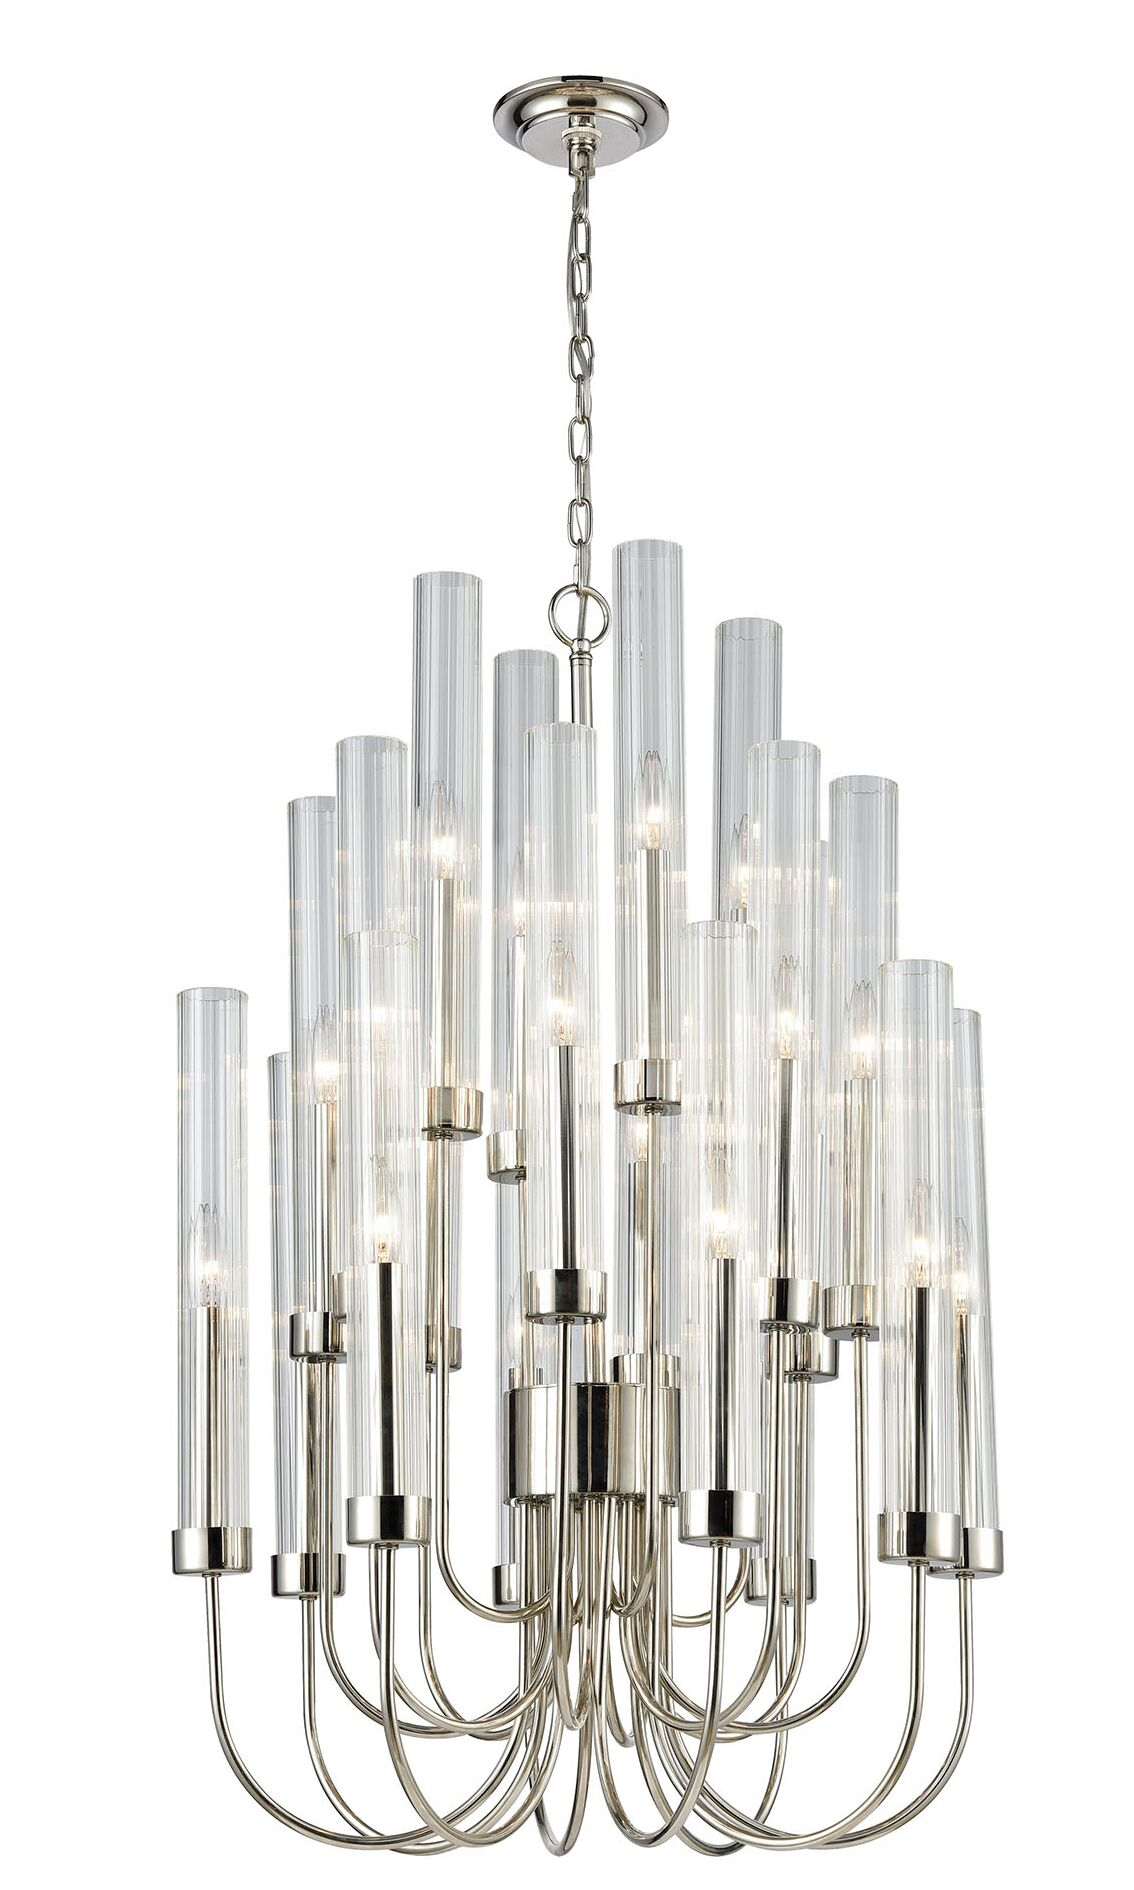 Bunch 20-Light Candle Style Chandelier